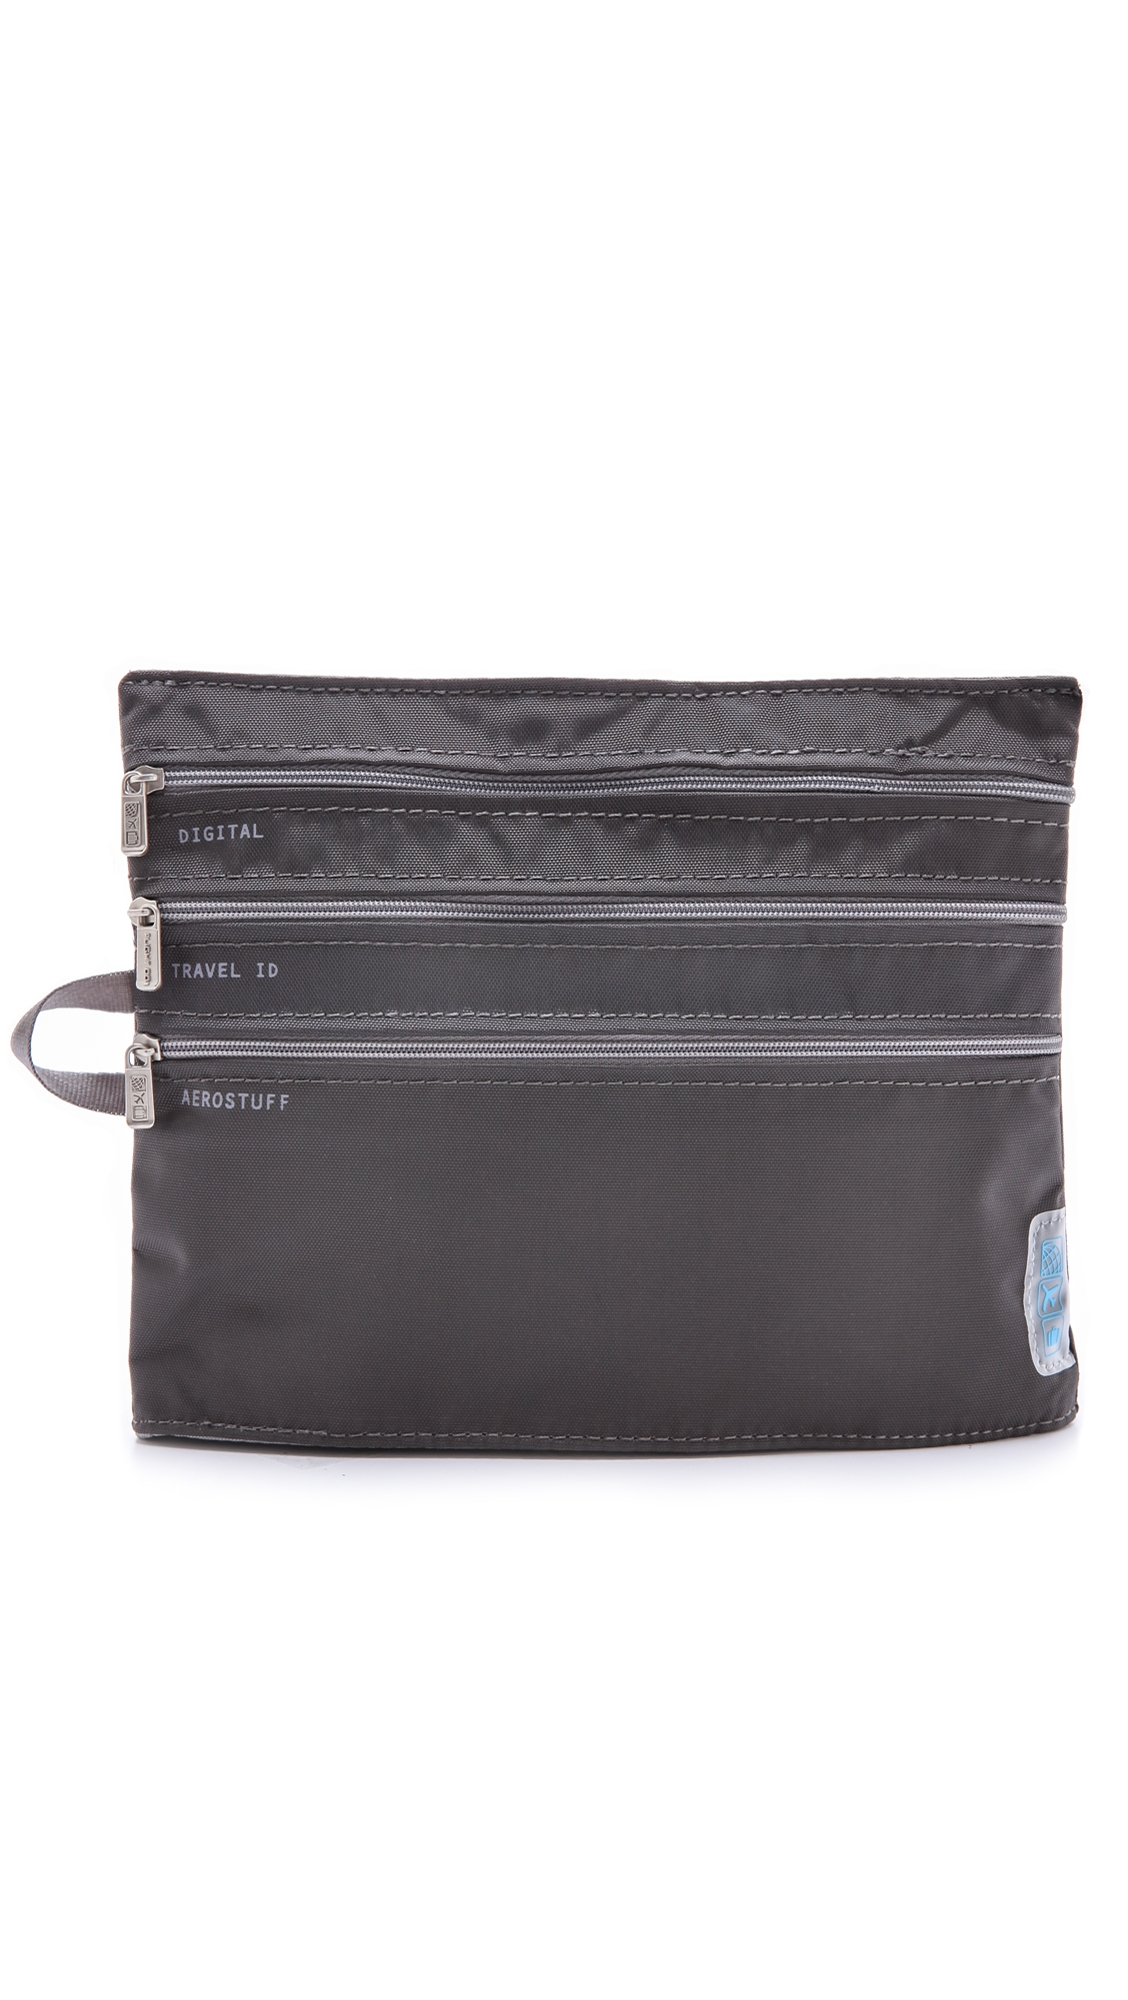 FLIGHT 001 F1 Seat Pack in Charcoal